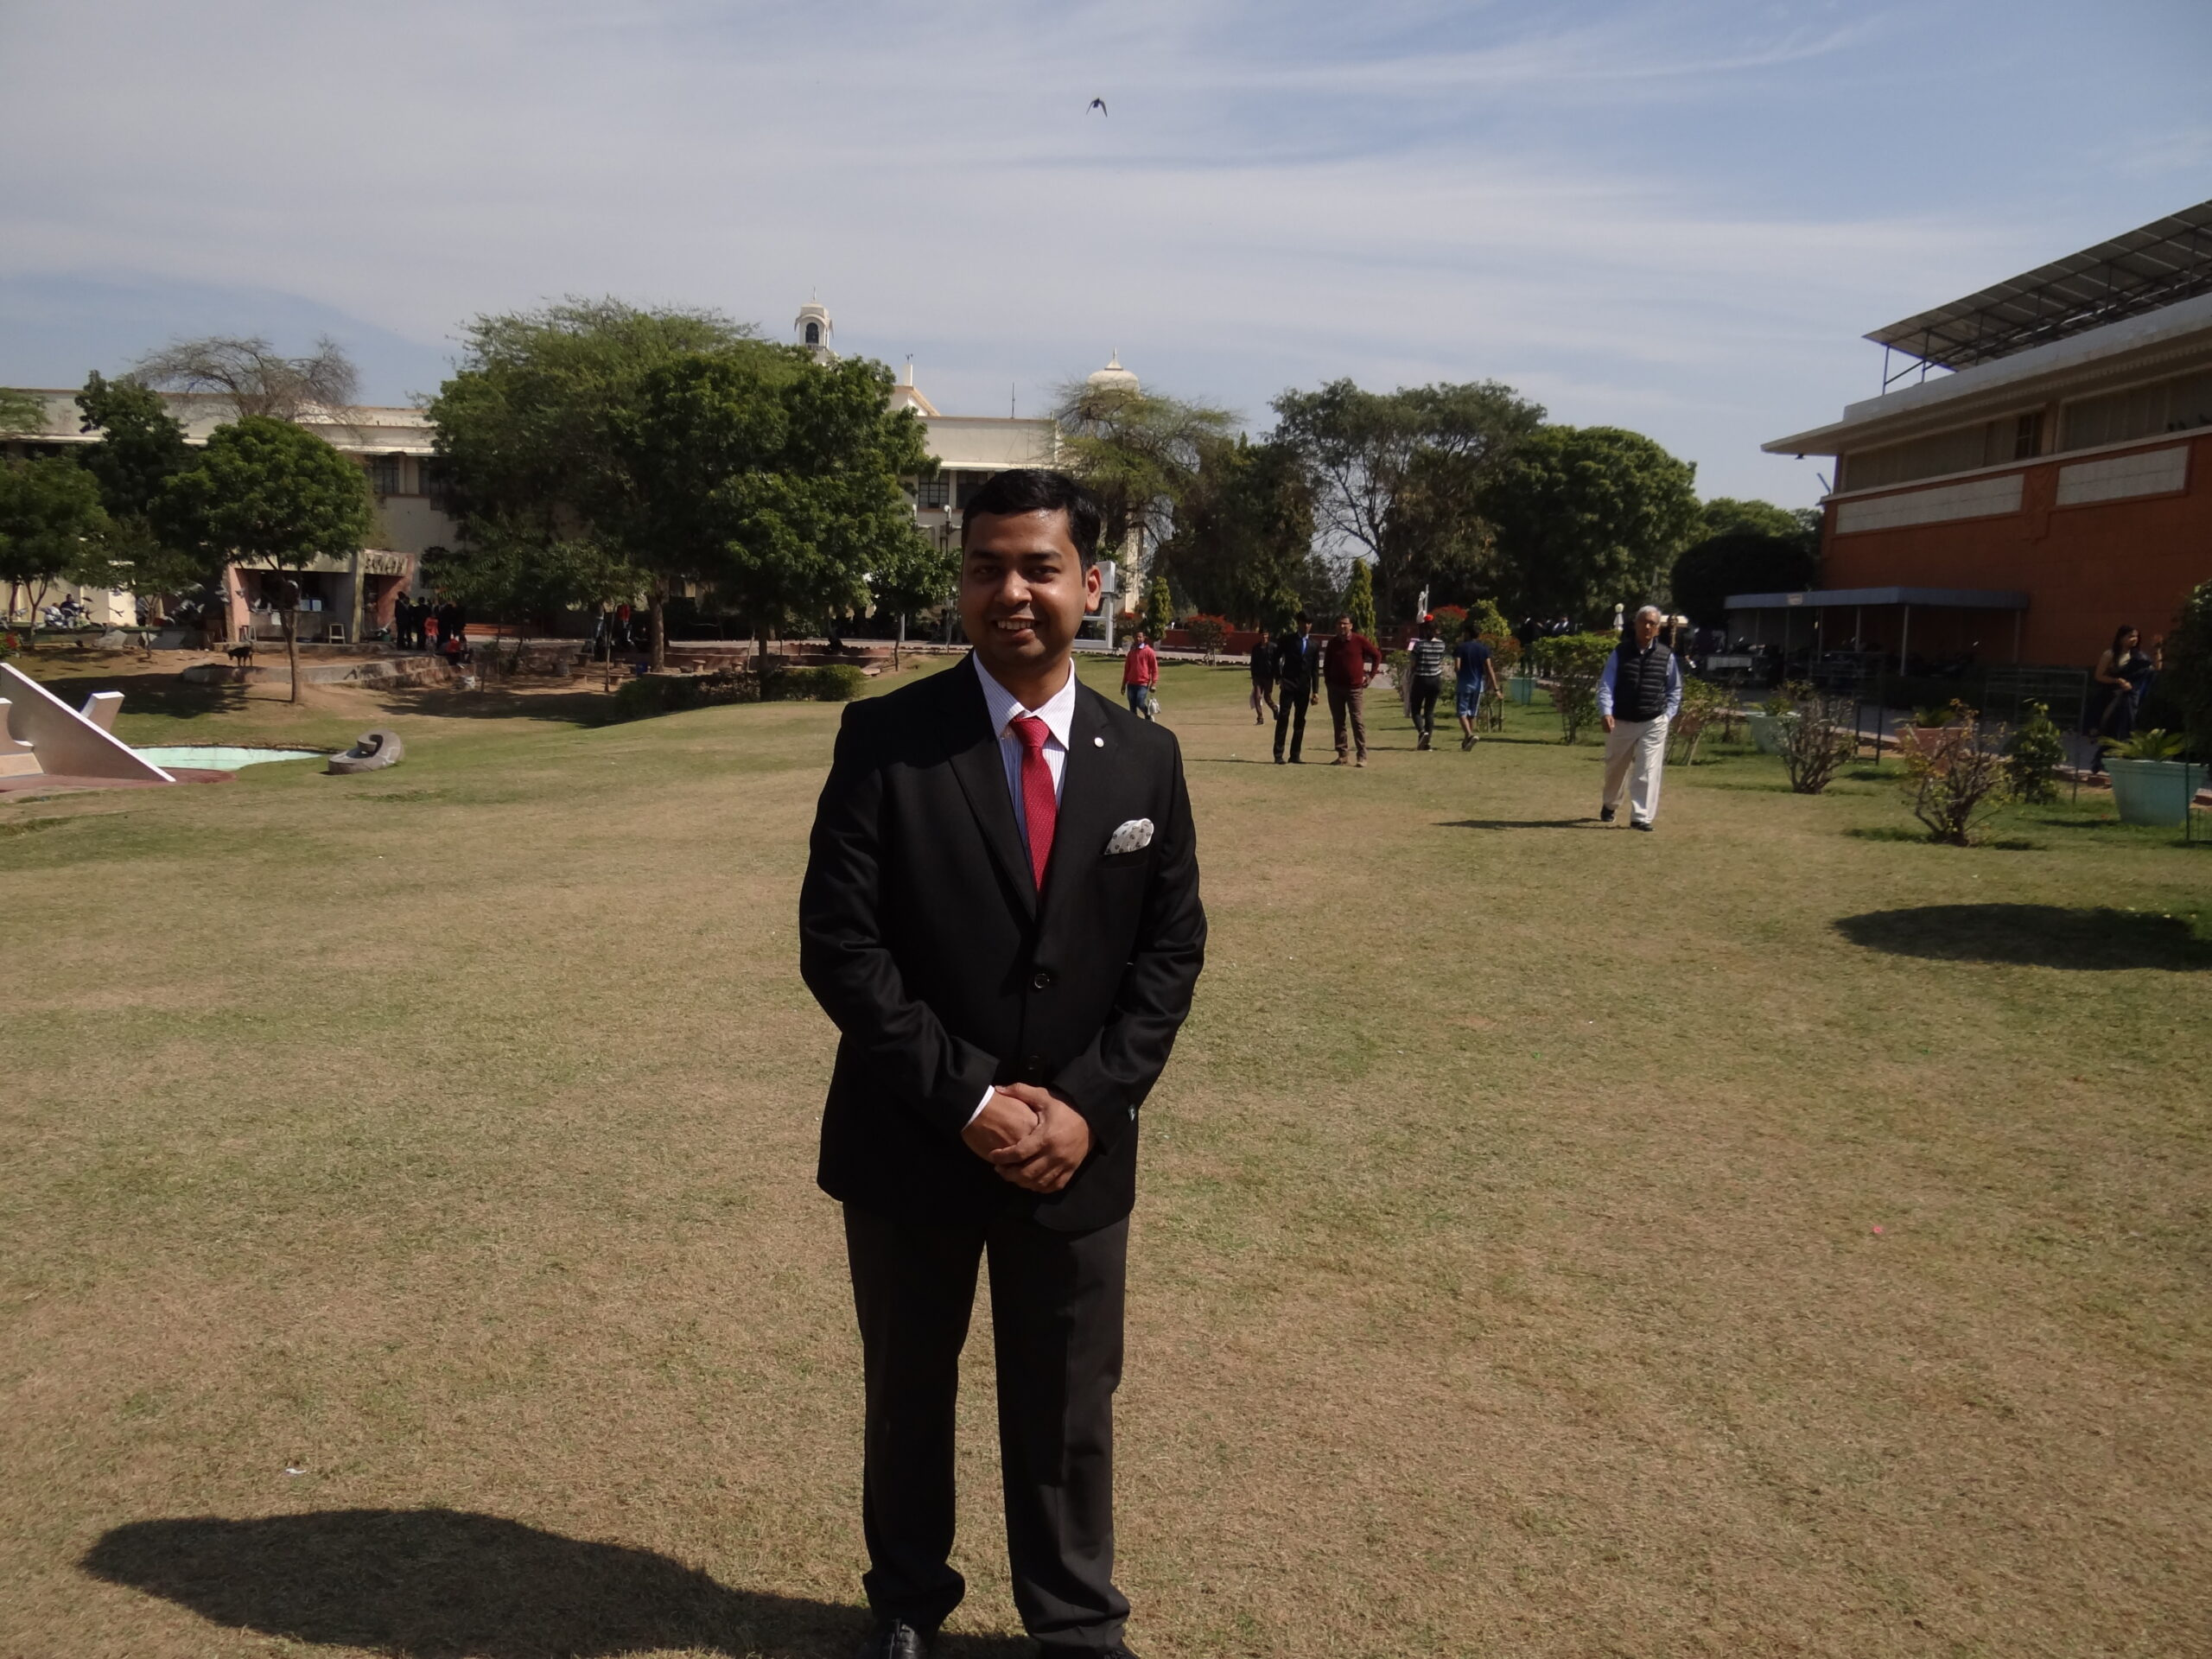 MASTERS in Mechanical Design Engineering  with 8 years of Industrial Experience